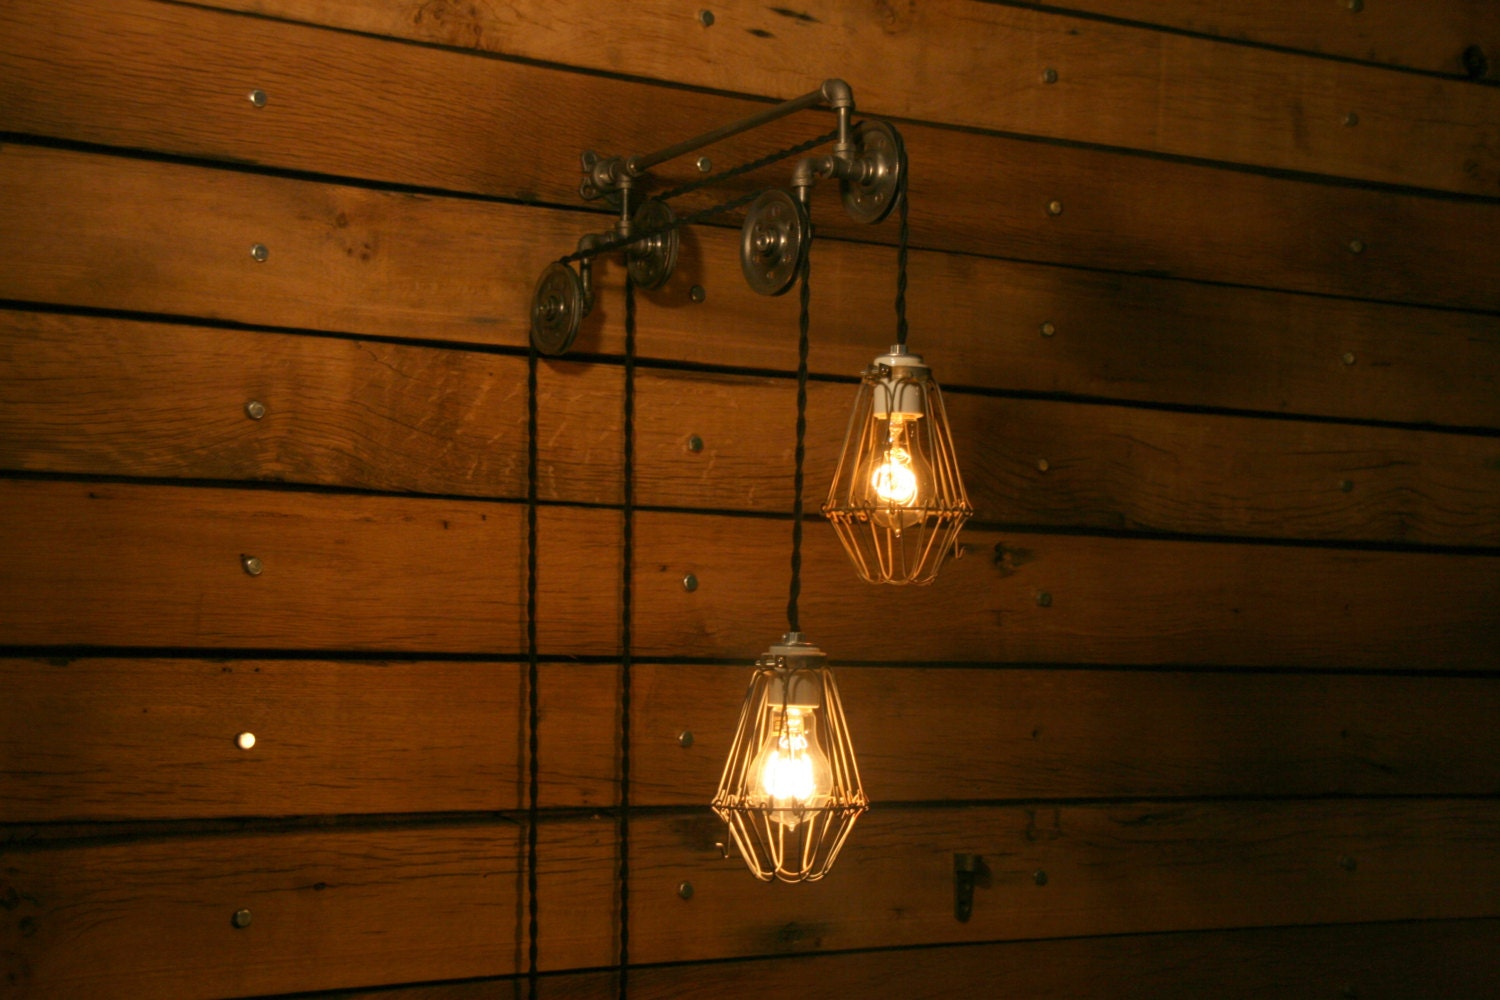 Lights Hanging On Wall : Unavailable Listing on Etsy